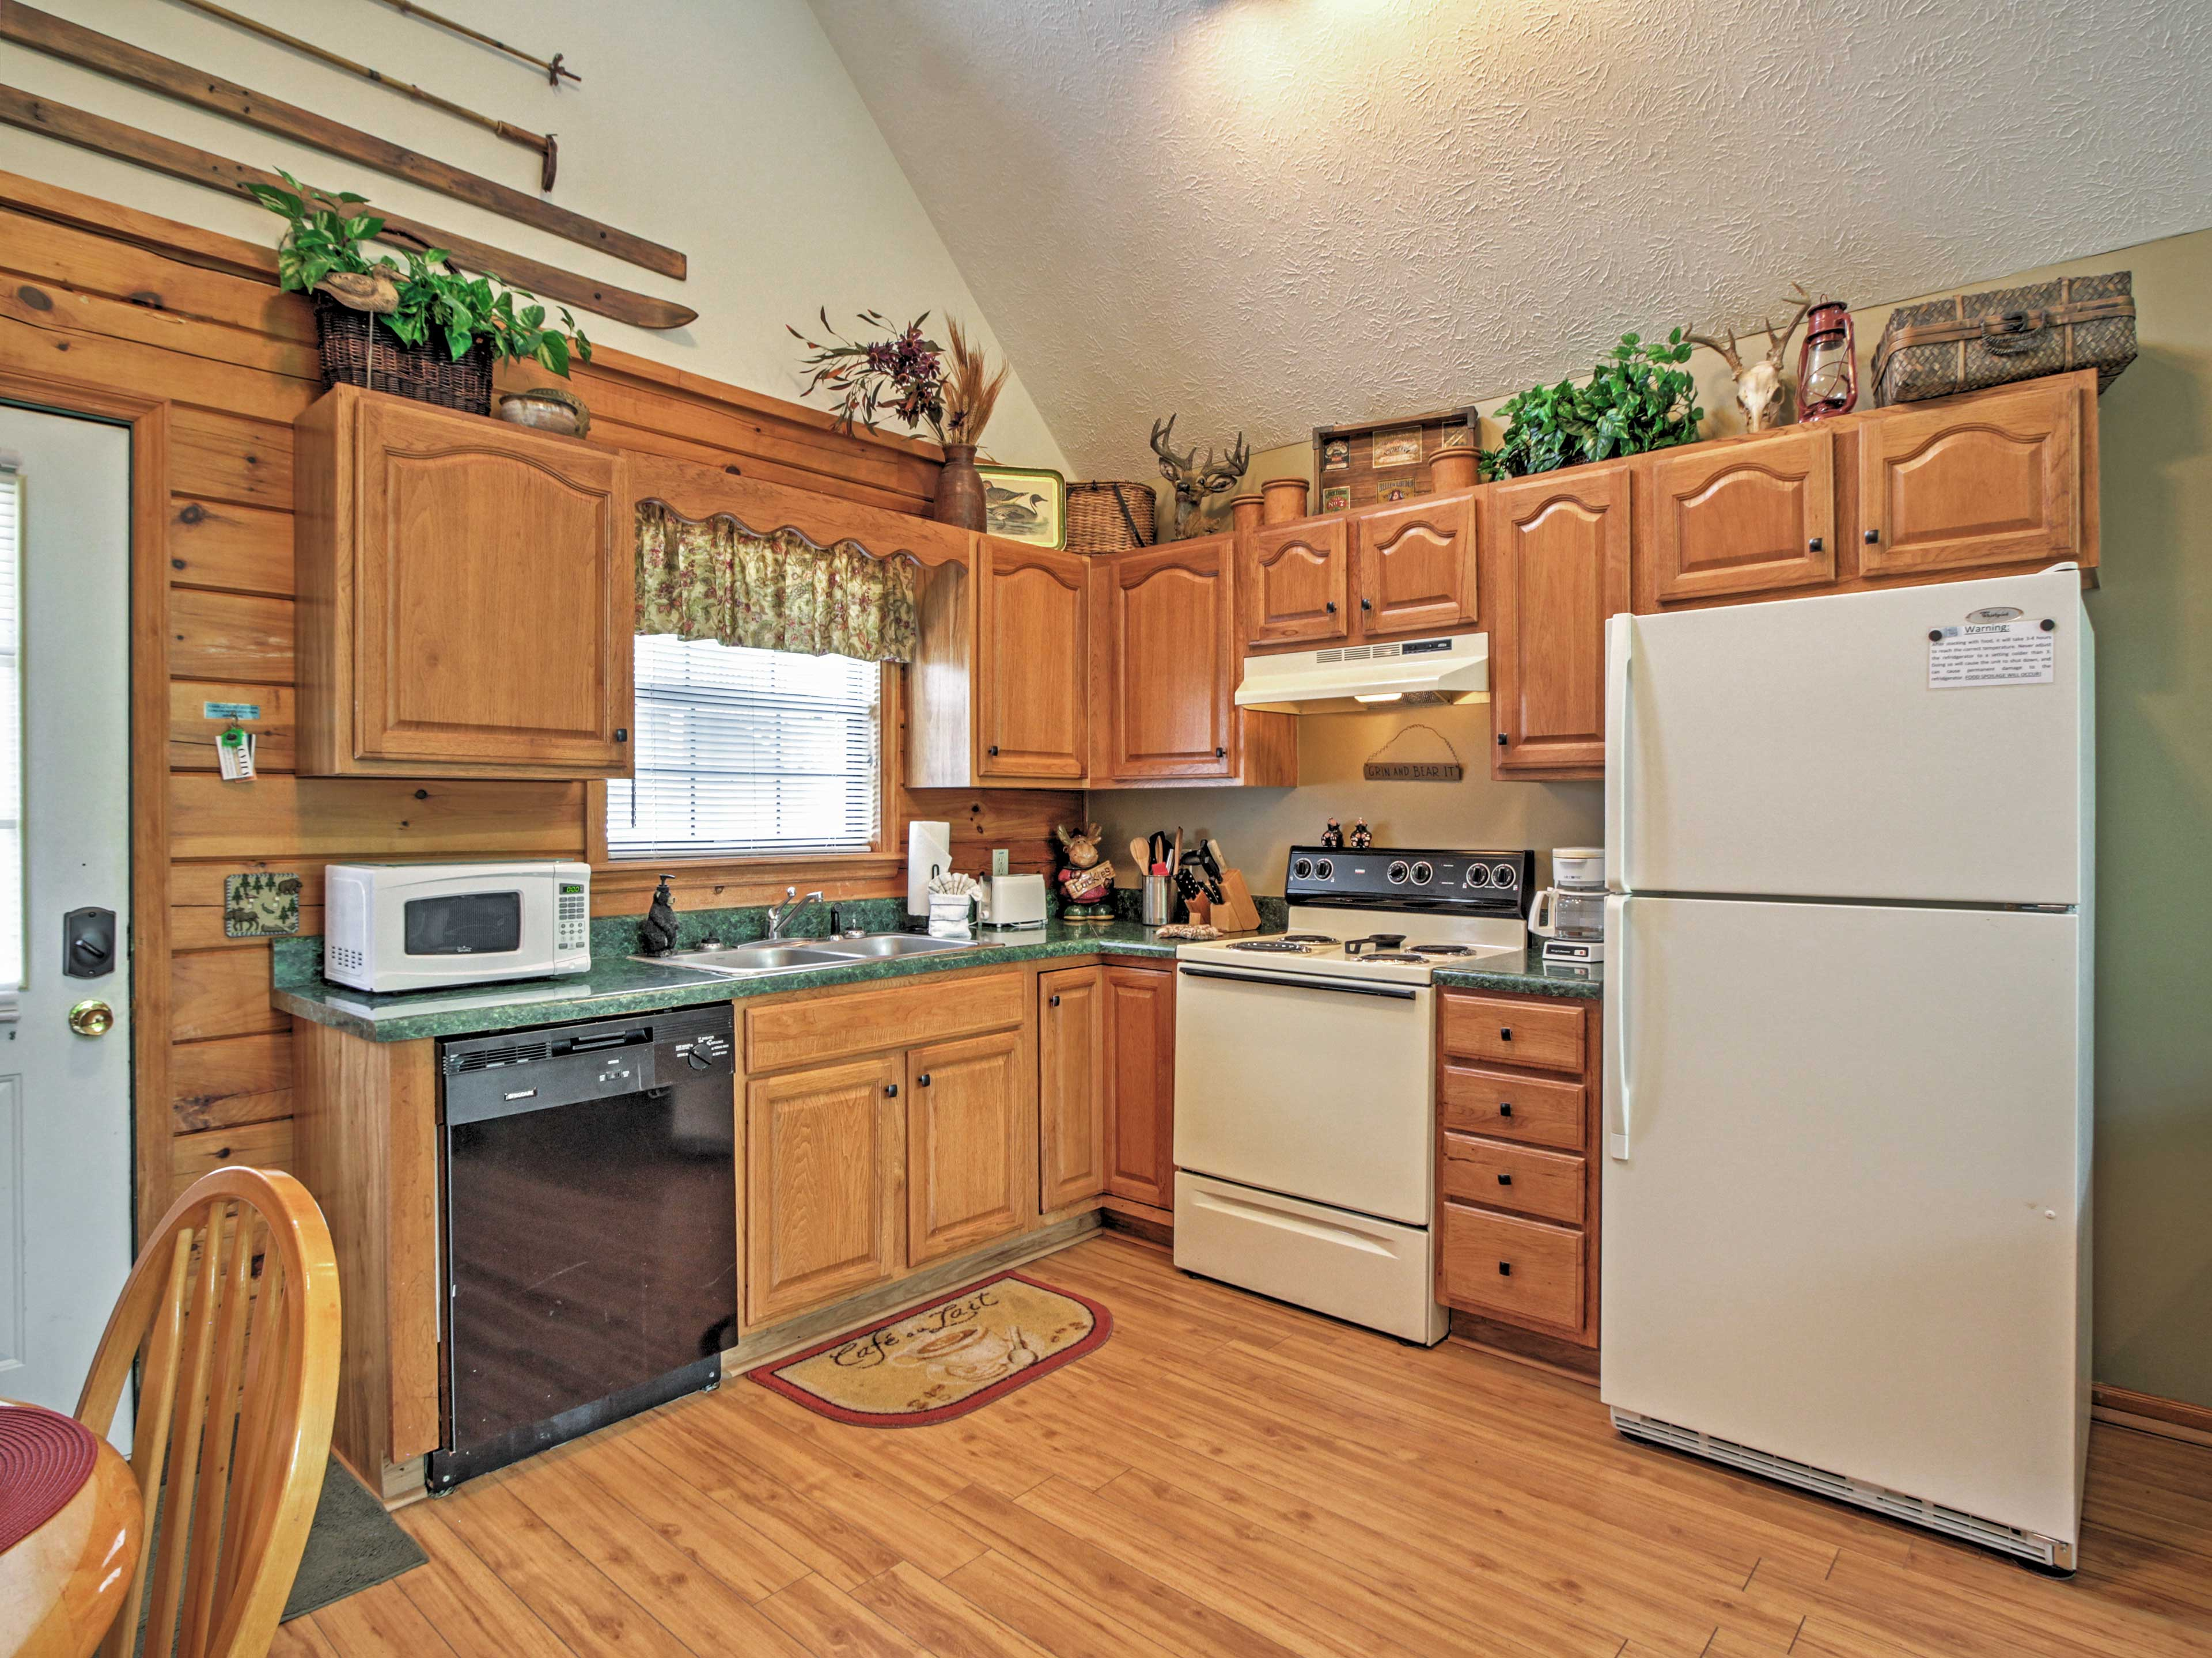 The living and dining areas open freely to the fully equipped kitchen.